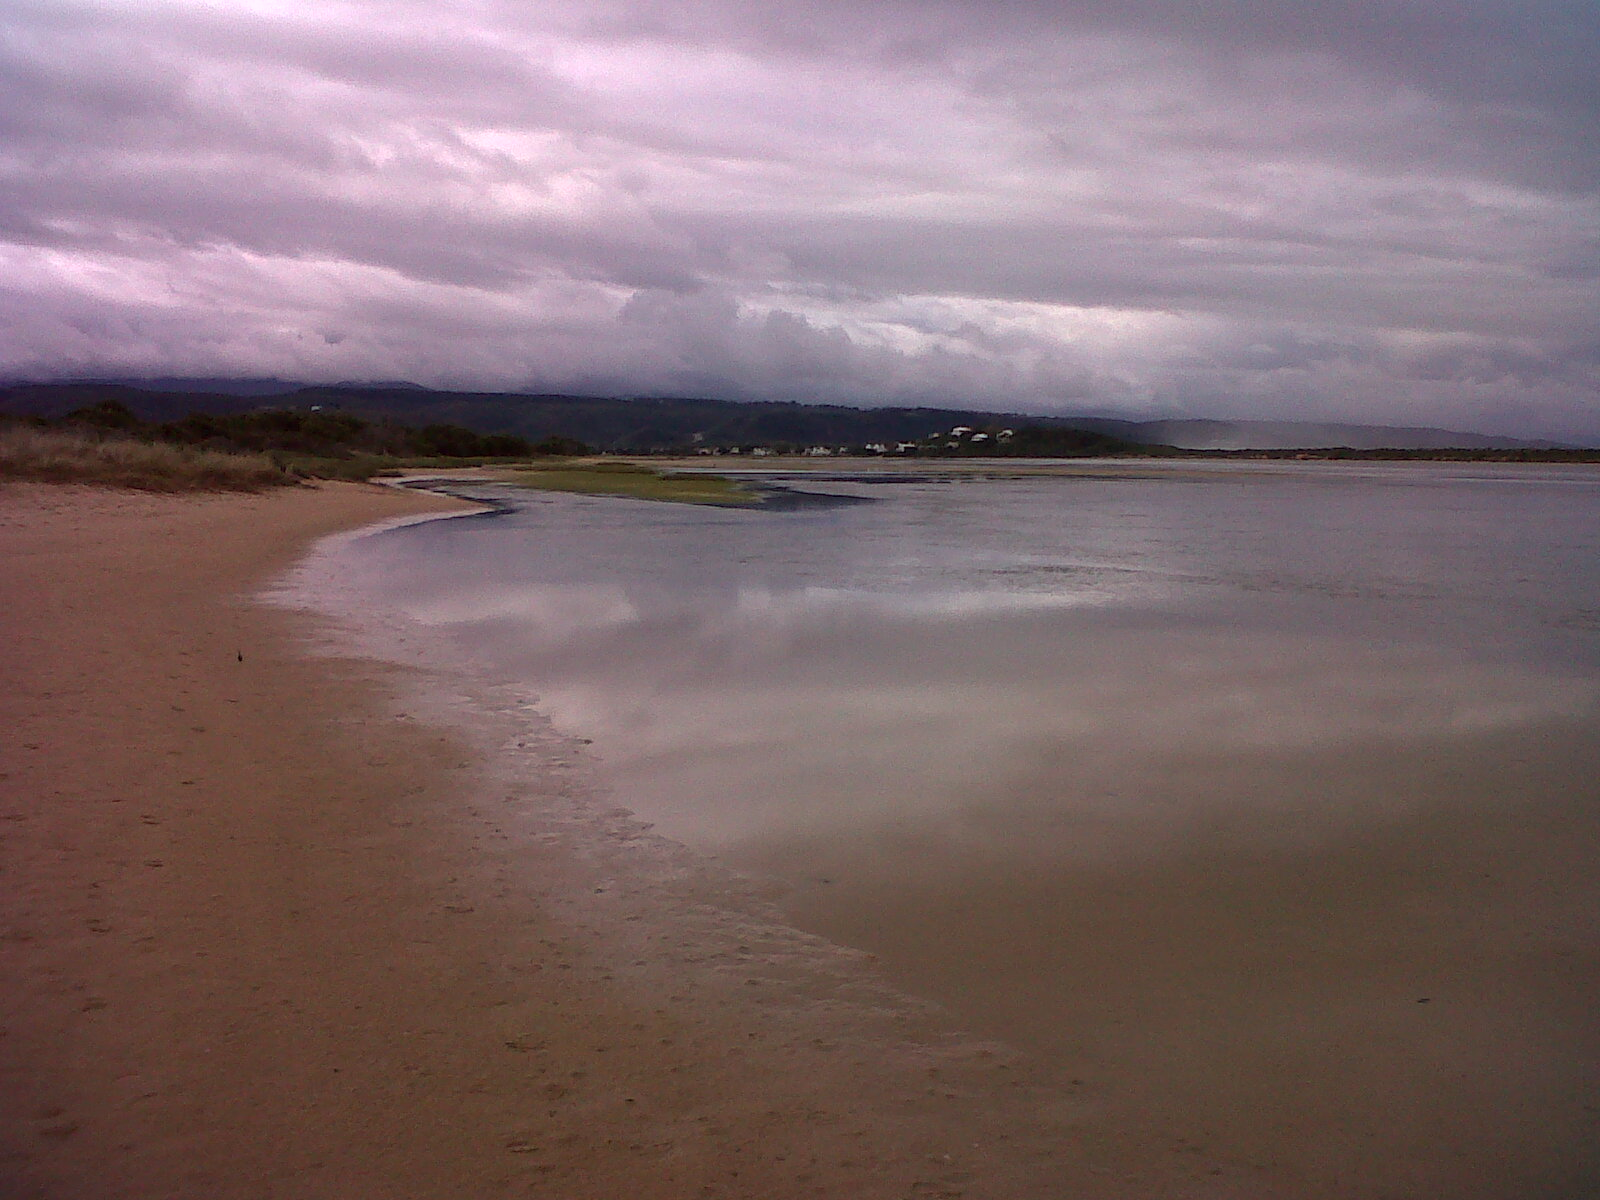 Plettenberg Bay Lagoon before the storm changed its face